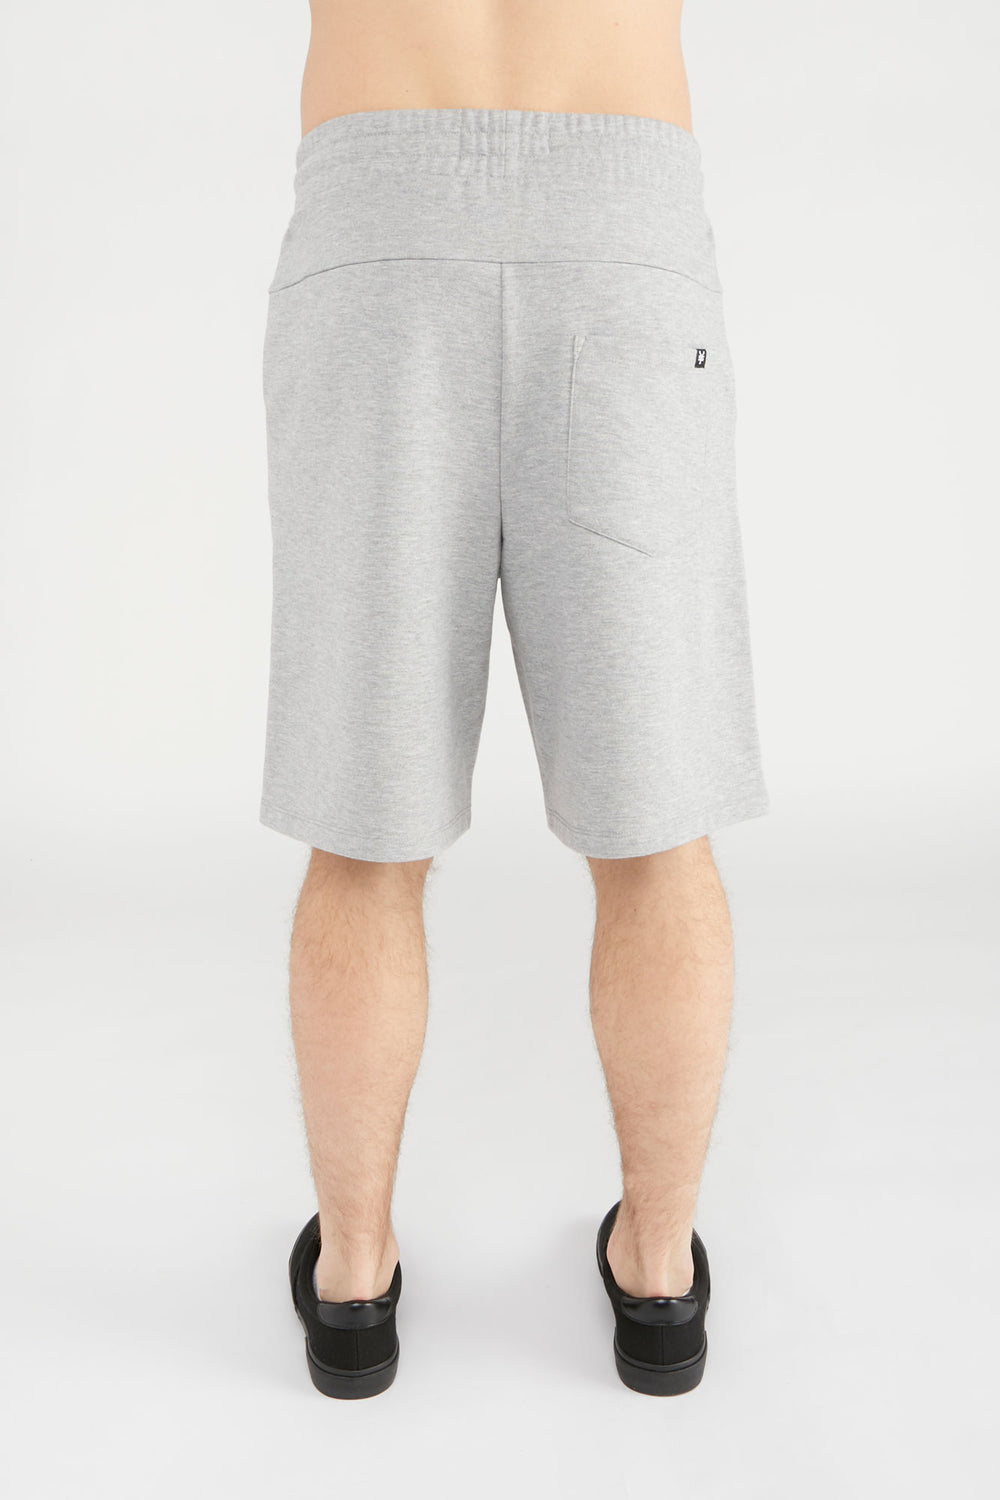 Shorts Longues Zoo York Homme Gris